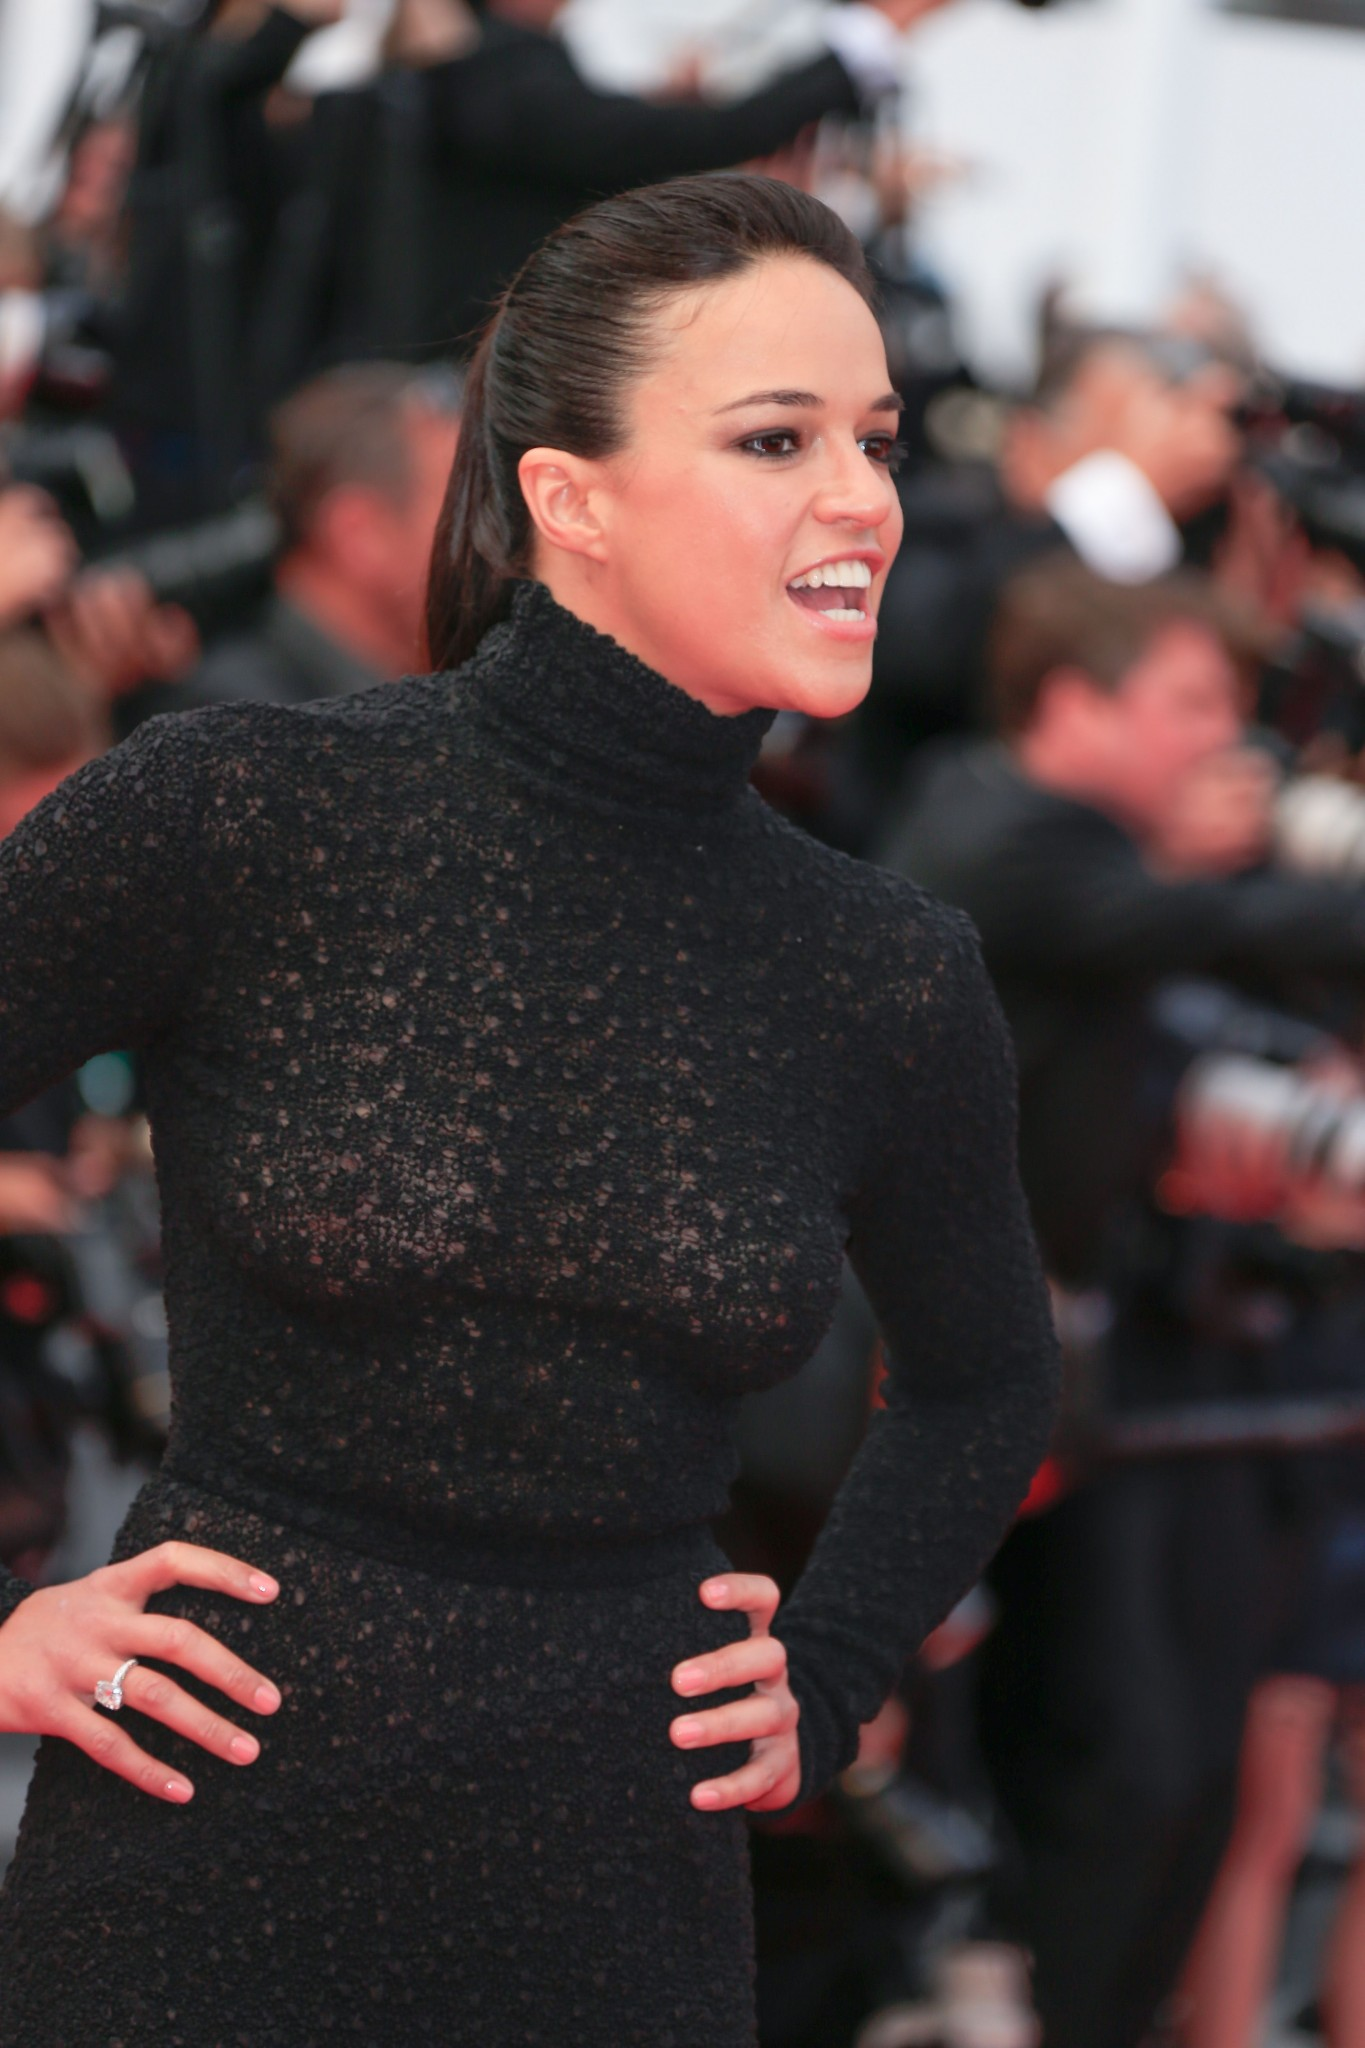 michelle-rodriguez-see-through-dress-at-cannes-film-festival-8